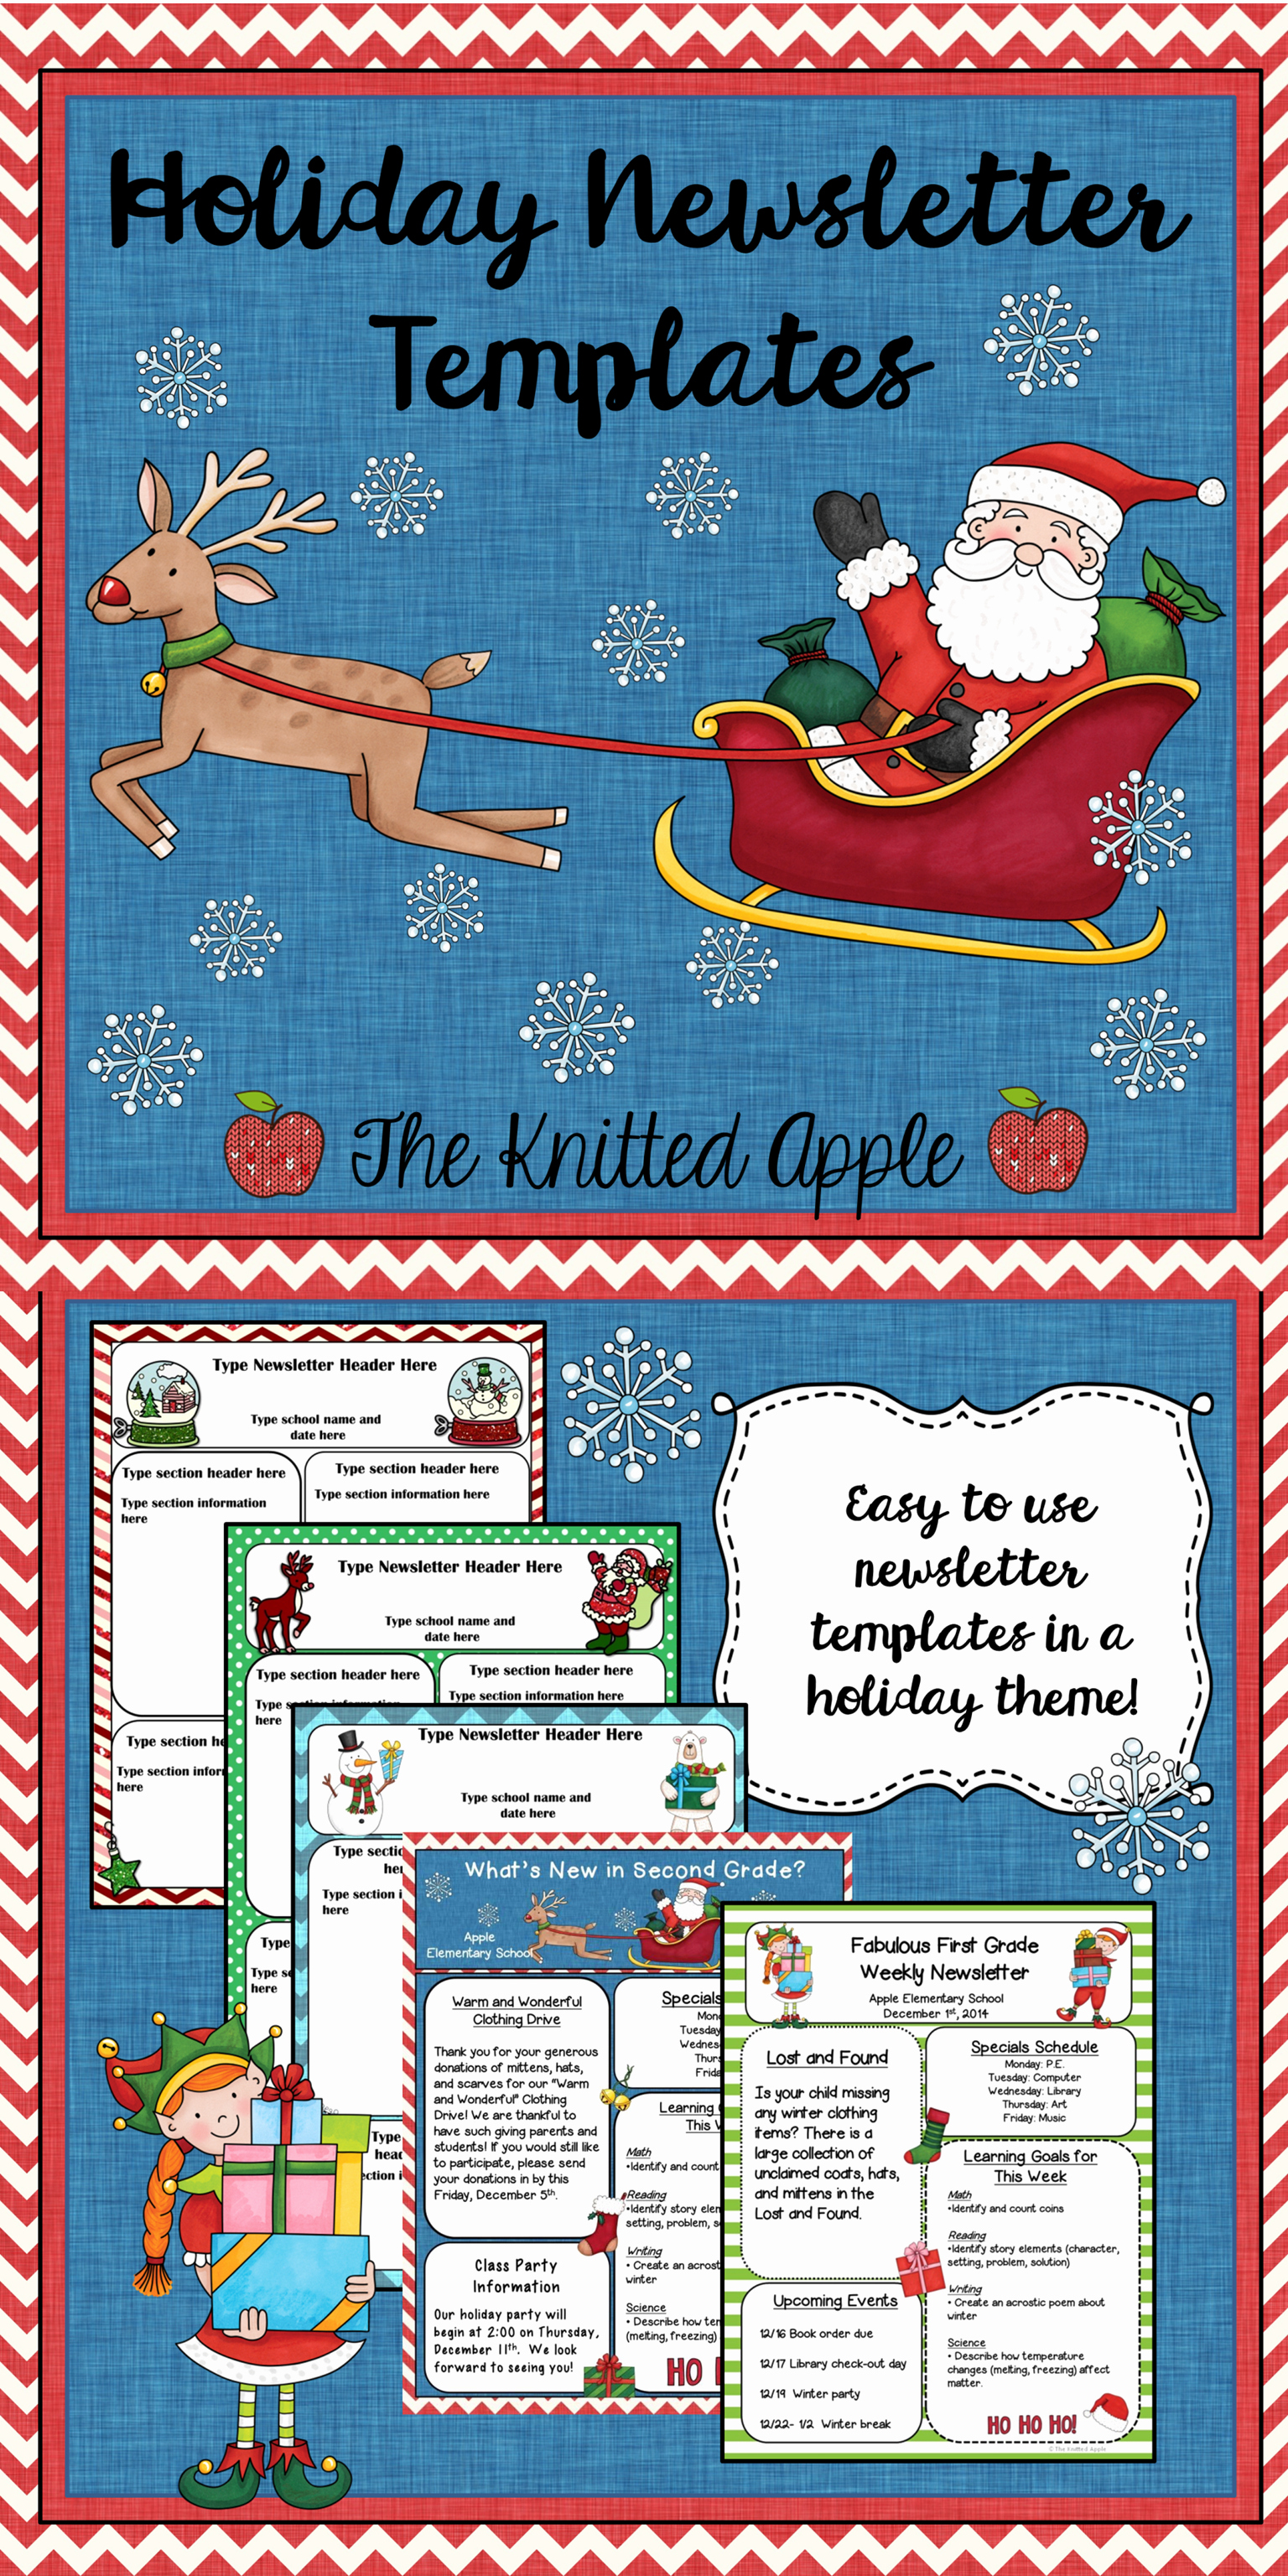 Free Holiday Newsletter Templates Fresh Free Newsletter Templates In A Festive Holiday theme